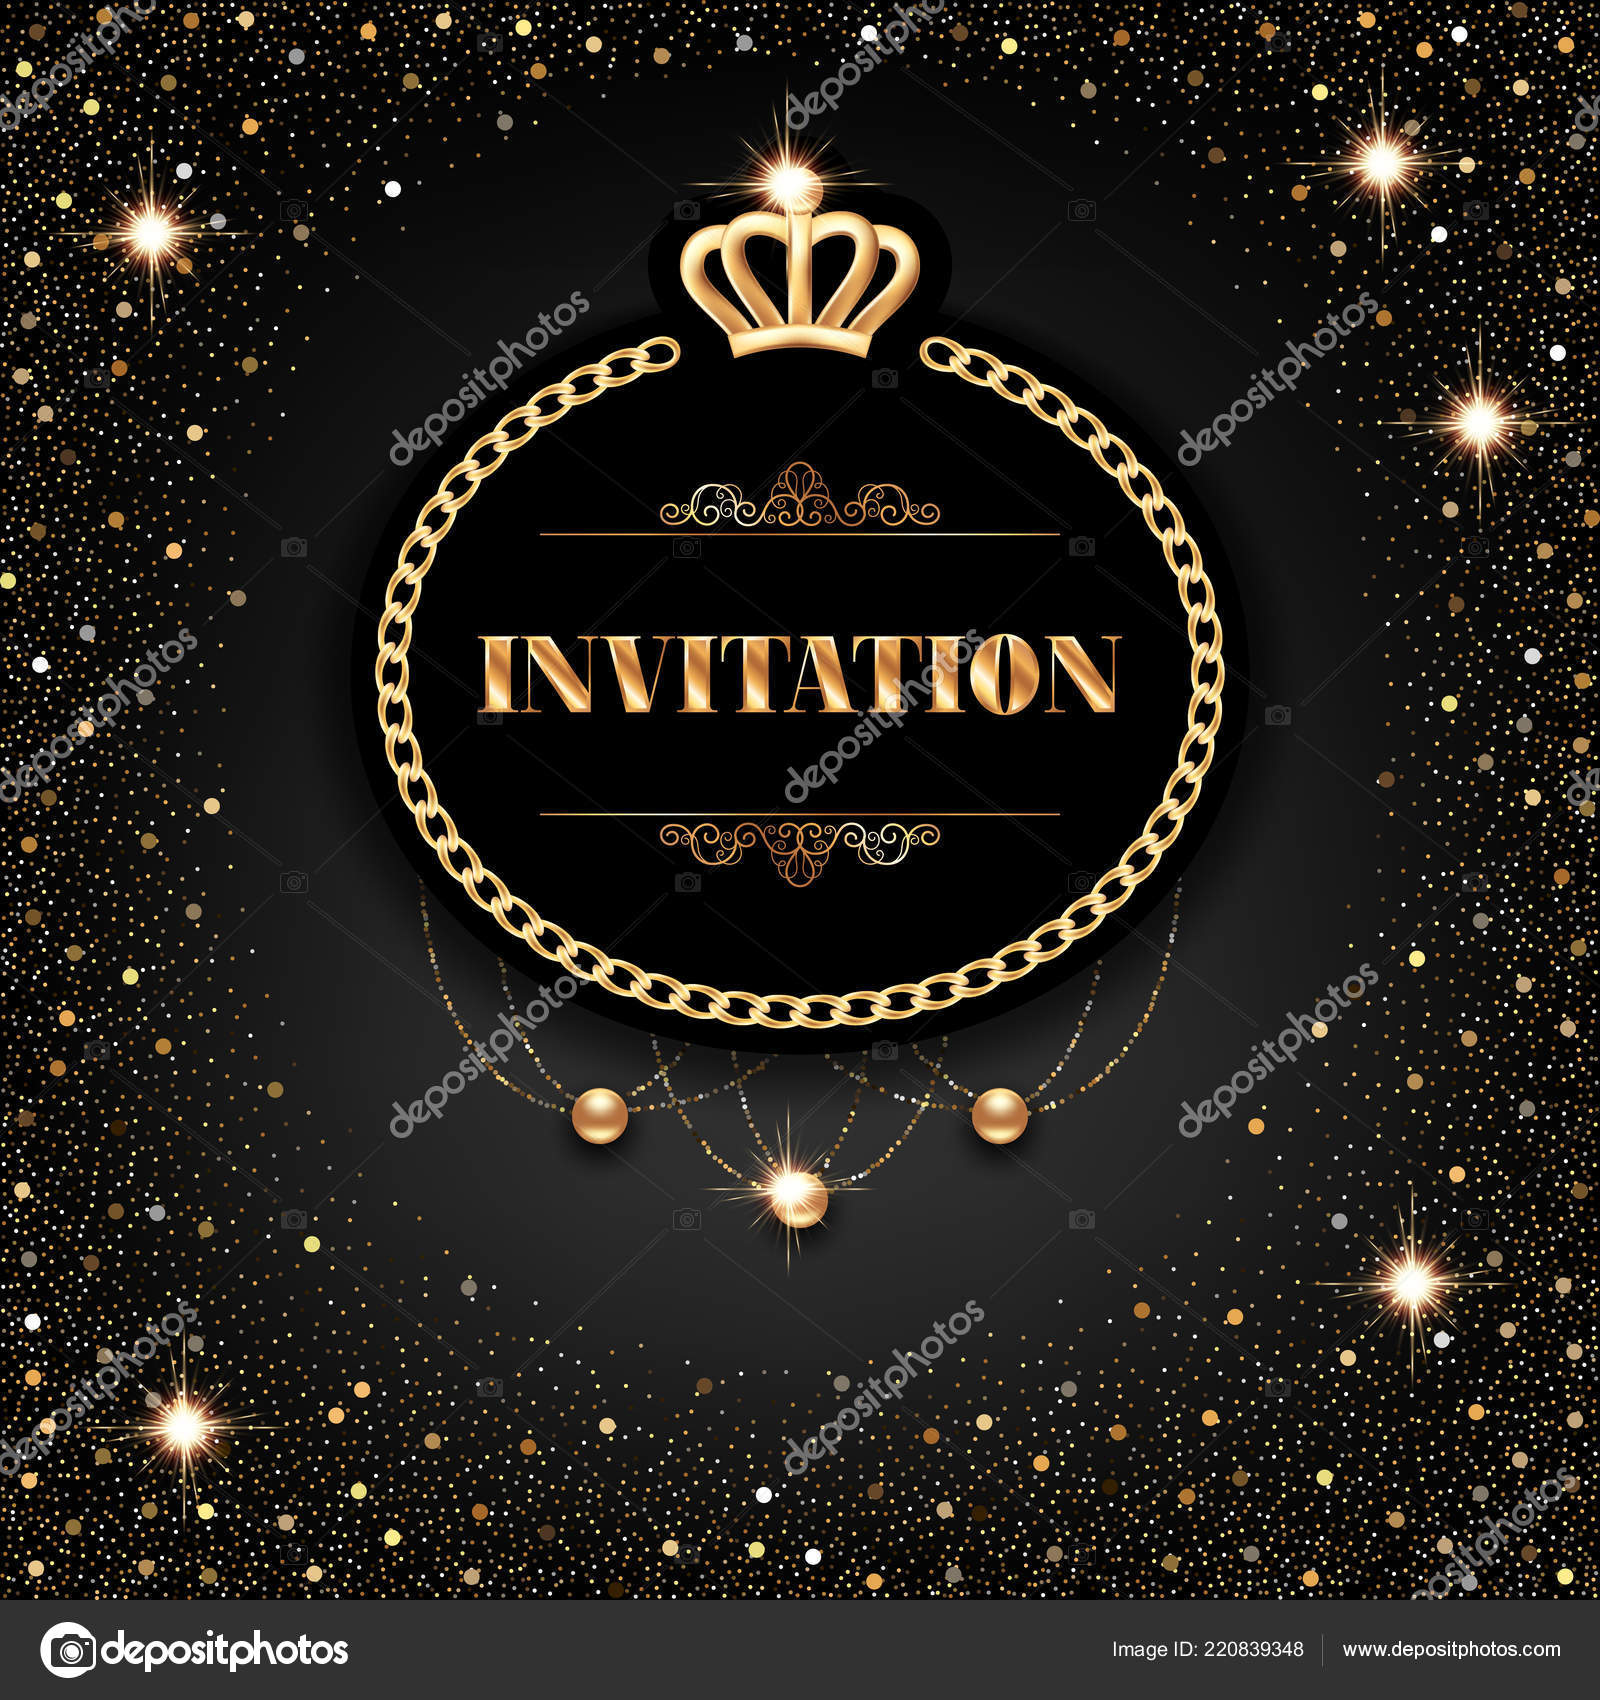 vip invitation template golden crown chain frame sparkling beads